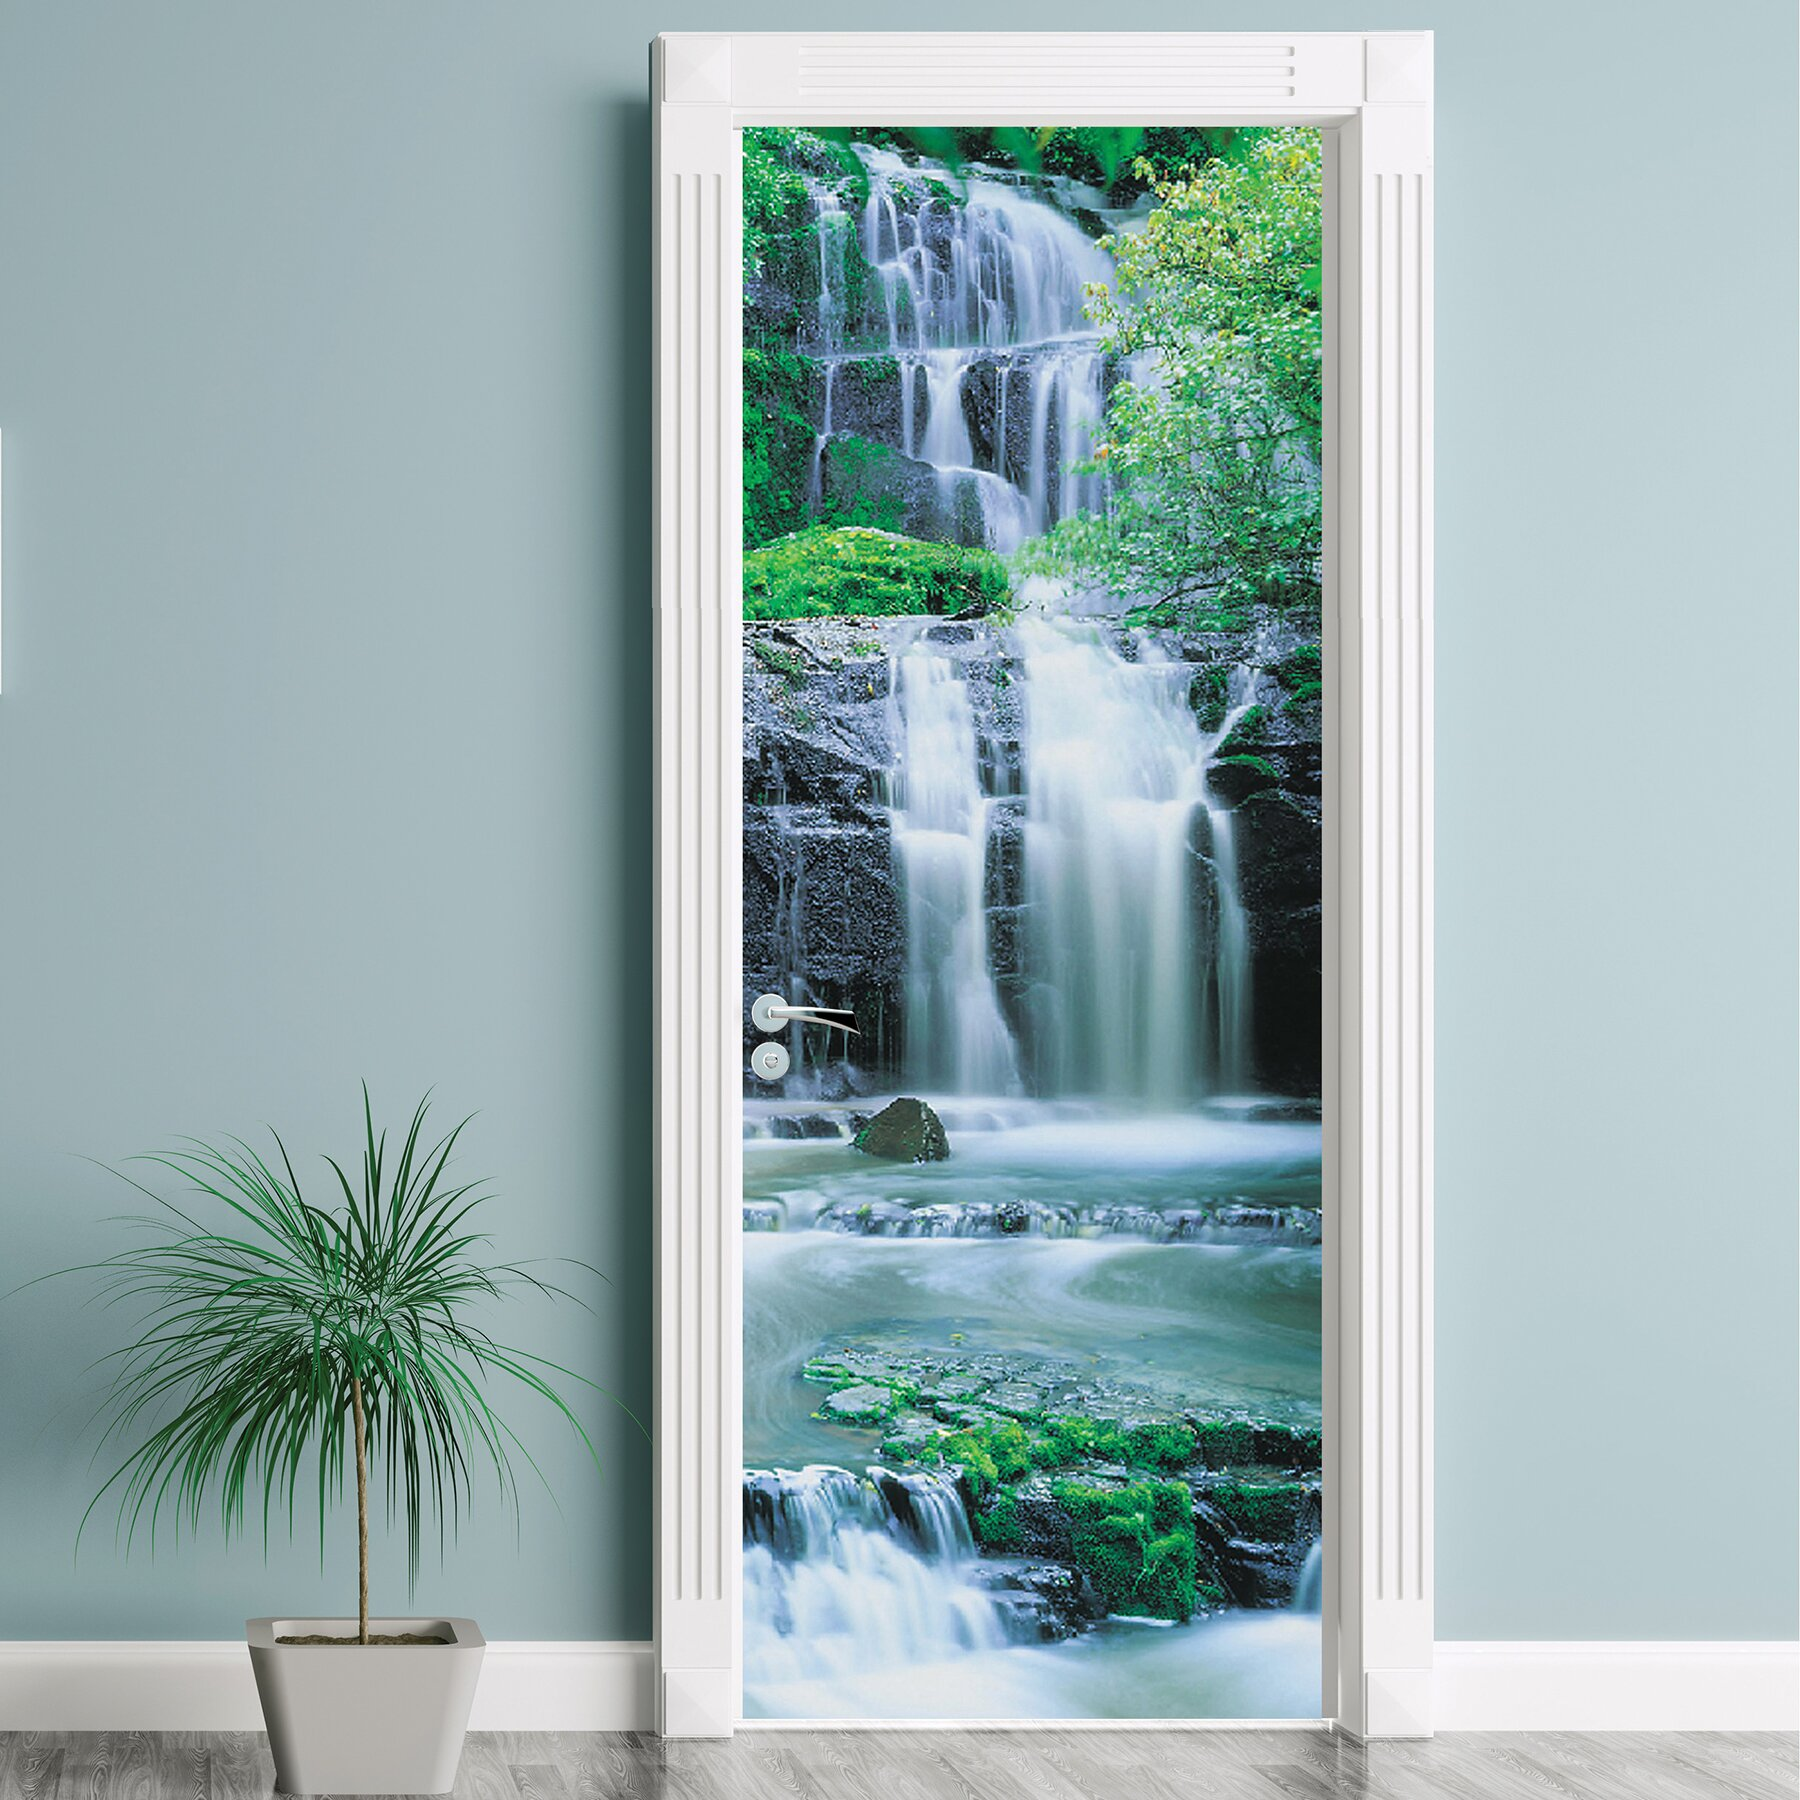 Komar pura kaunui falls wall mural wayfair for Brewster birch wall mural